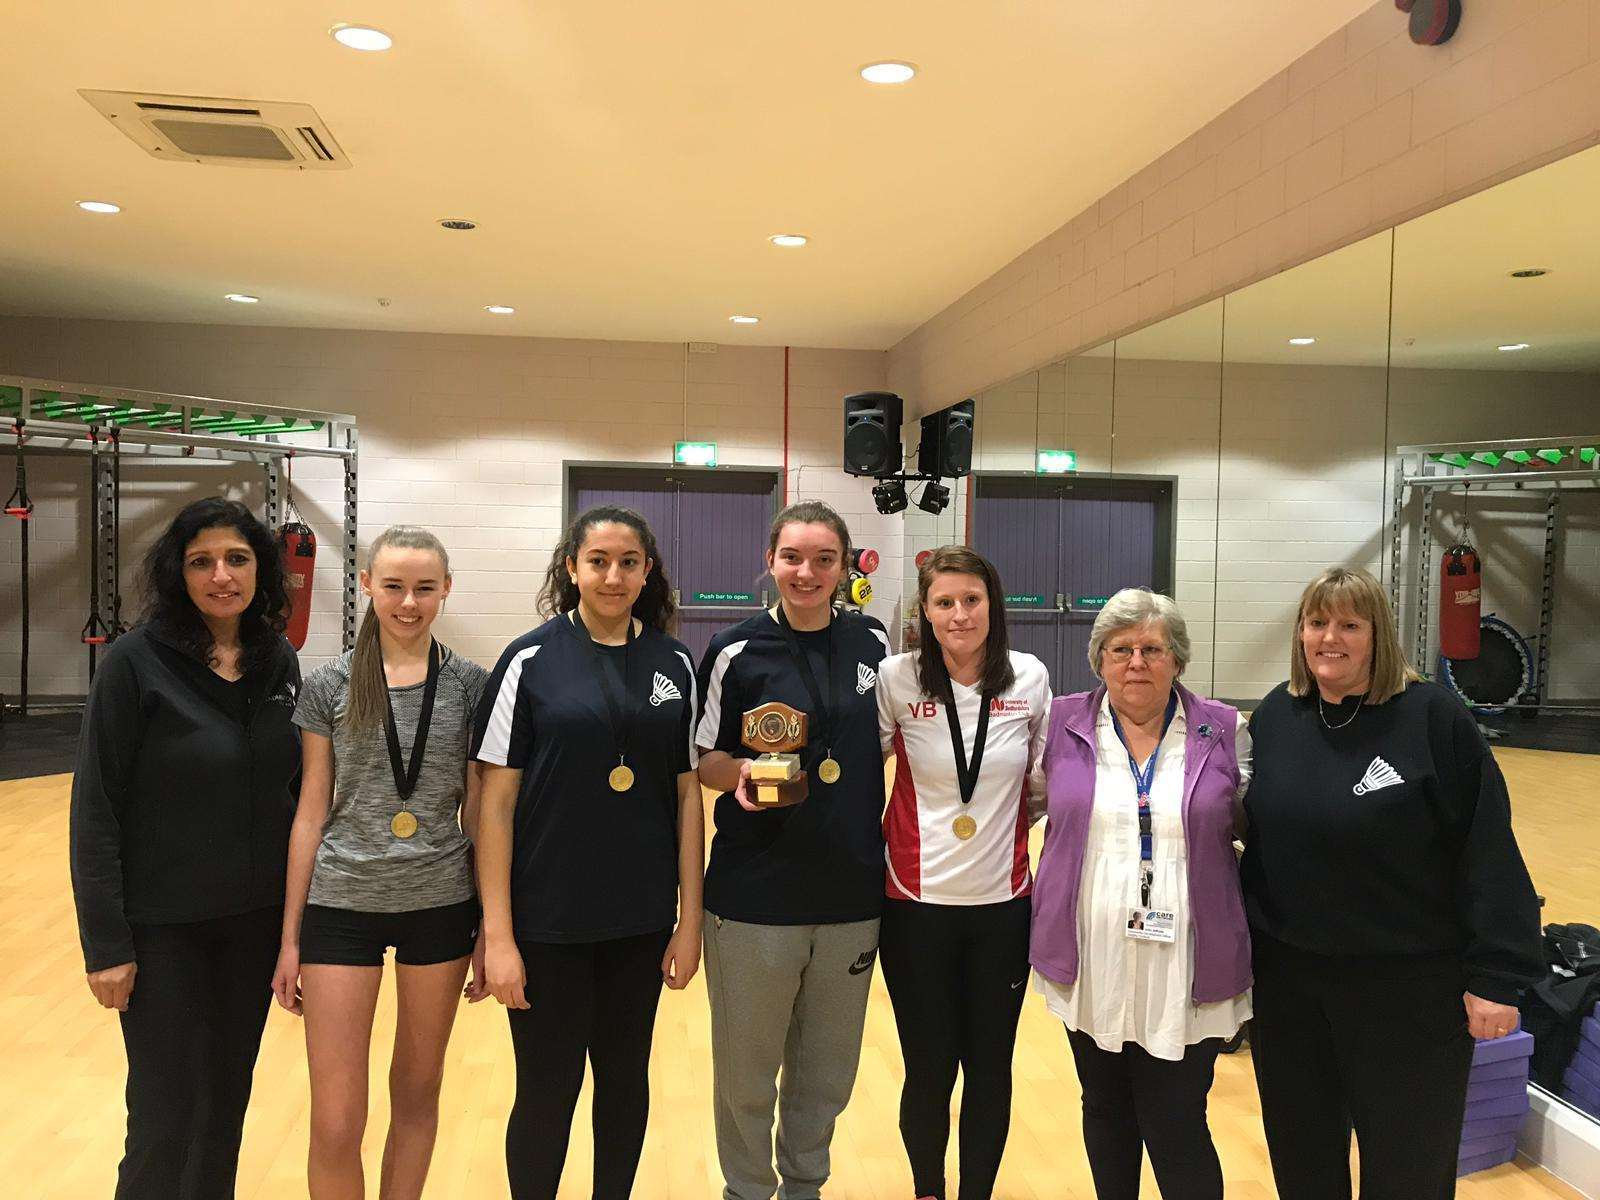 Ouse valley no strings ladies badminton winners (6816306)